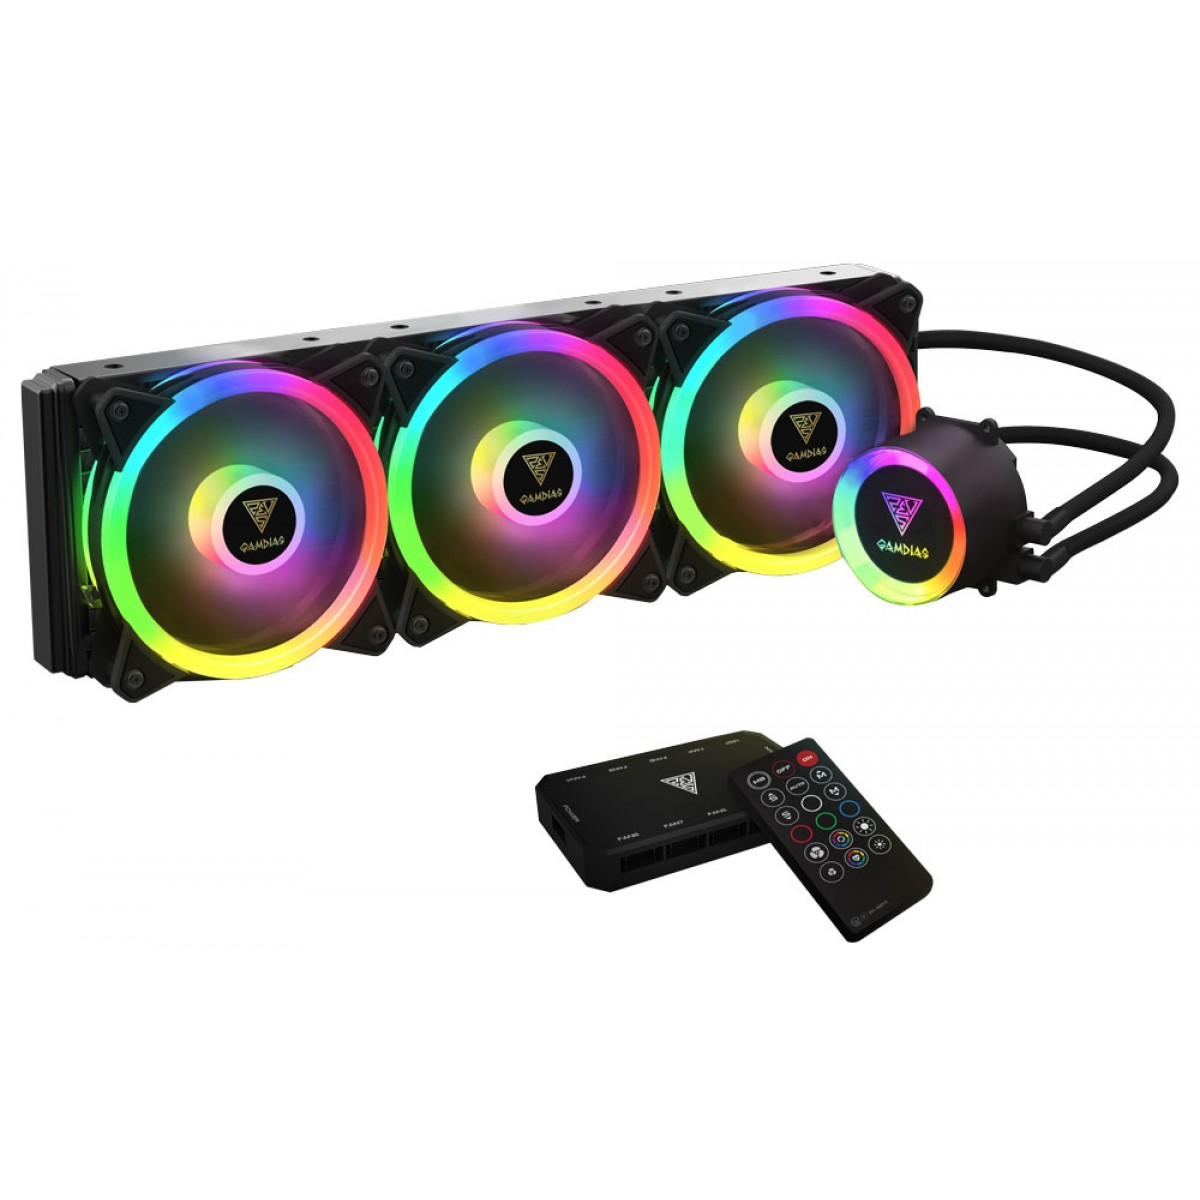 Water Cooler Gamdias Chione P2-360R, RGB, Controlador, 360mm, Intel-AMD